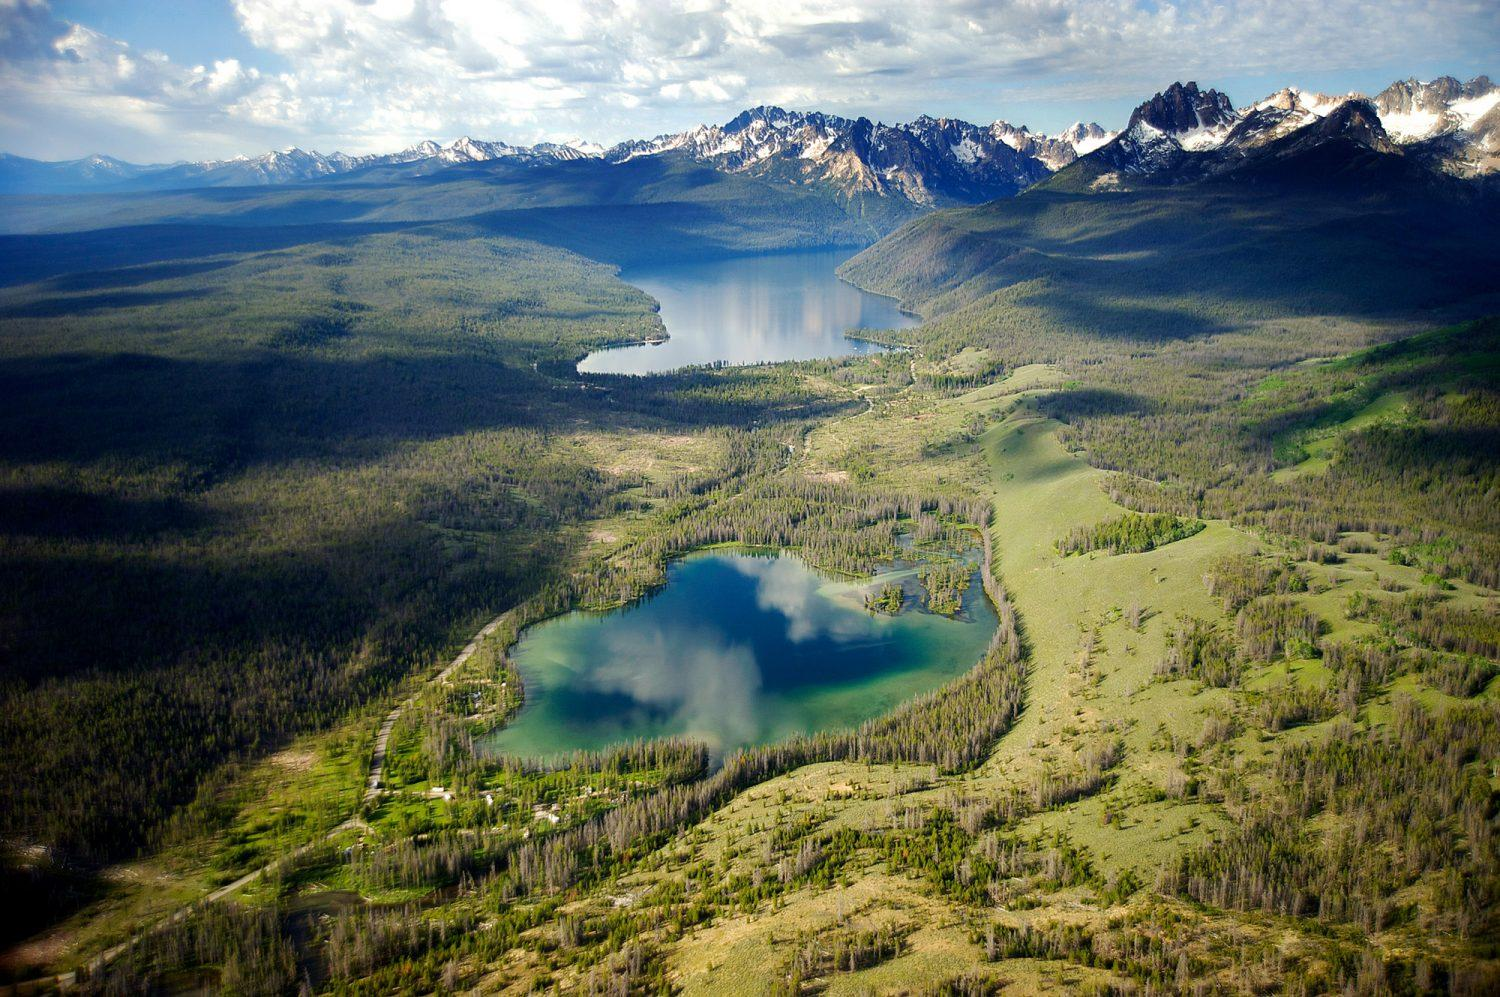 Redfish Lake and Little Redfish Lake lie in Idaho's Sawtooth National Recreation Area.